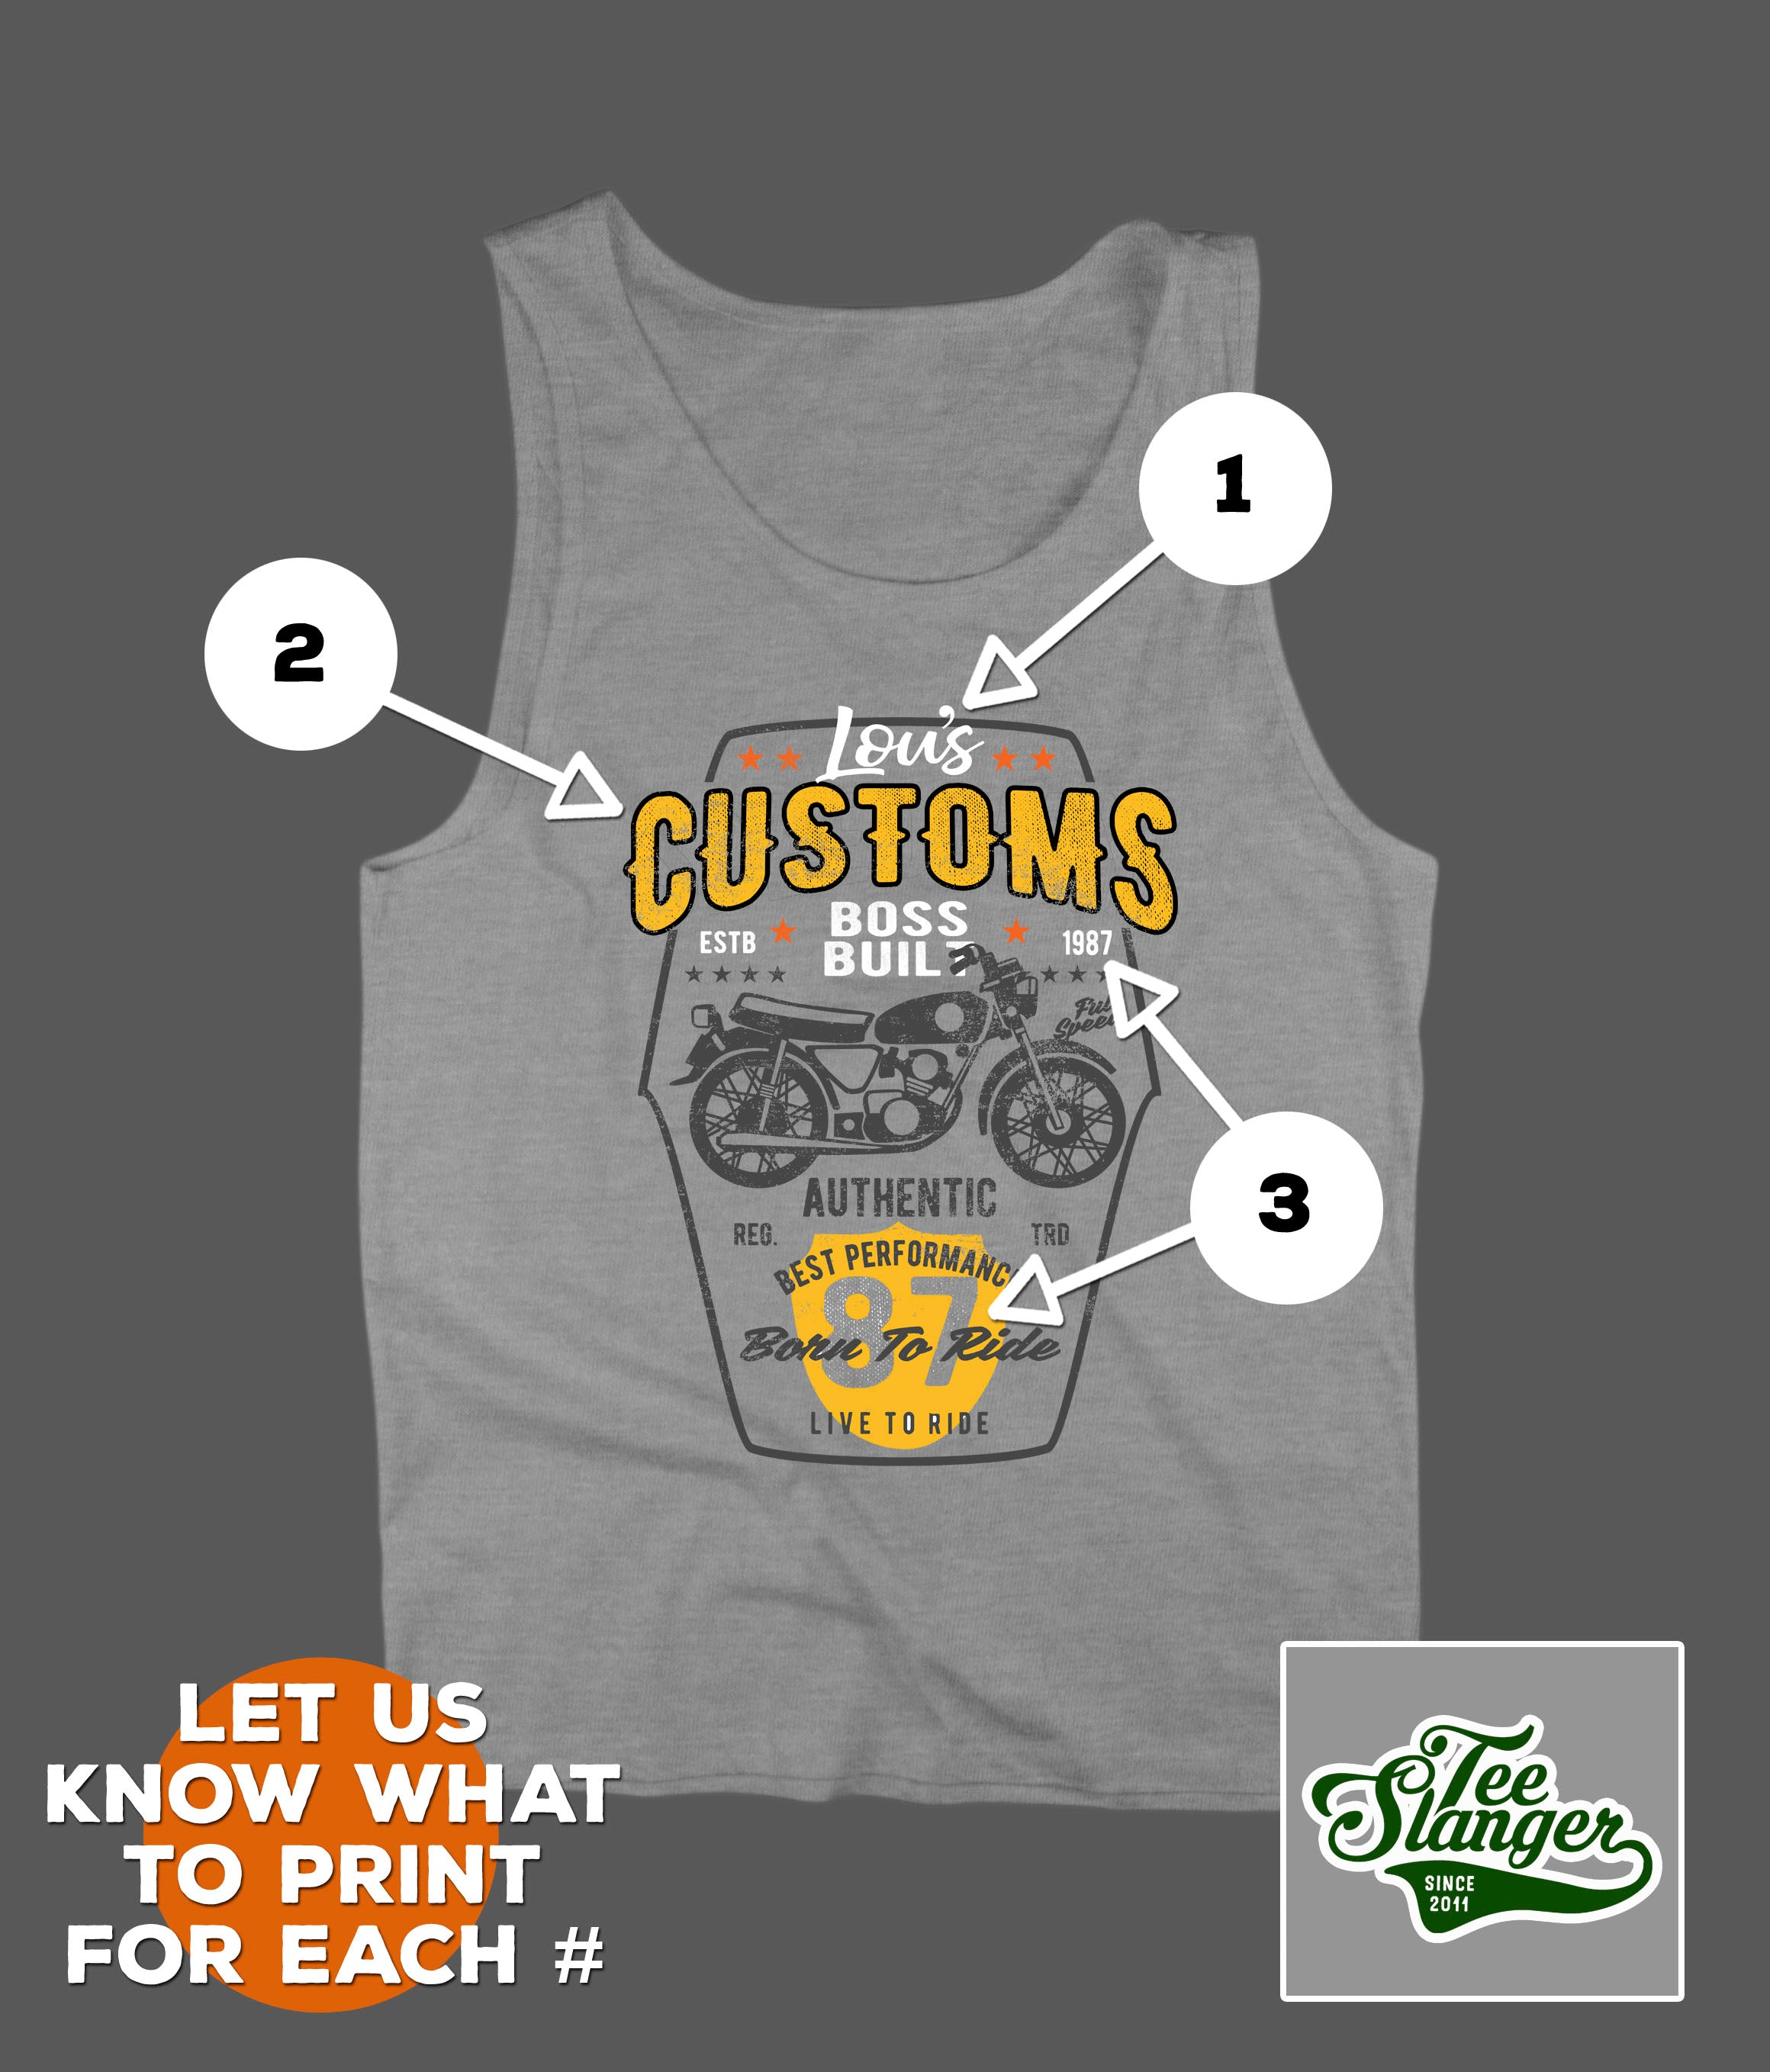 CUSTOM BIKER T-SHIRT PERSONALIZATION OPTIONS